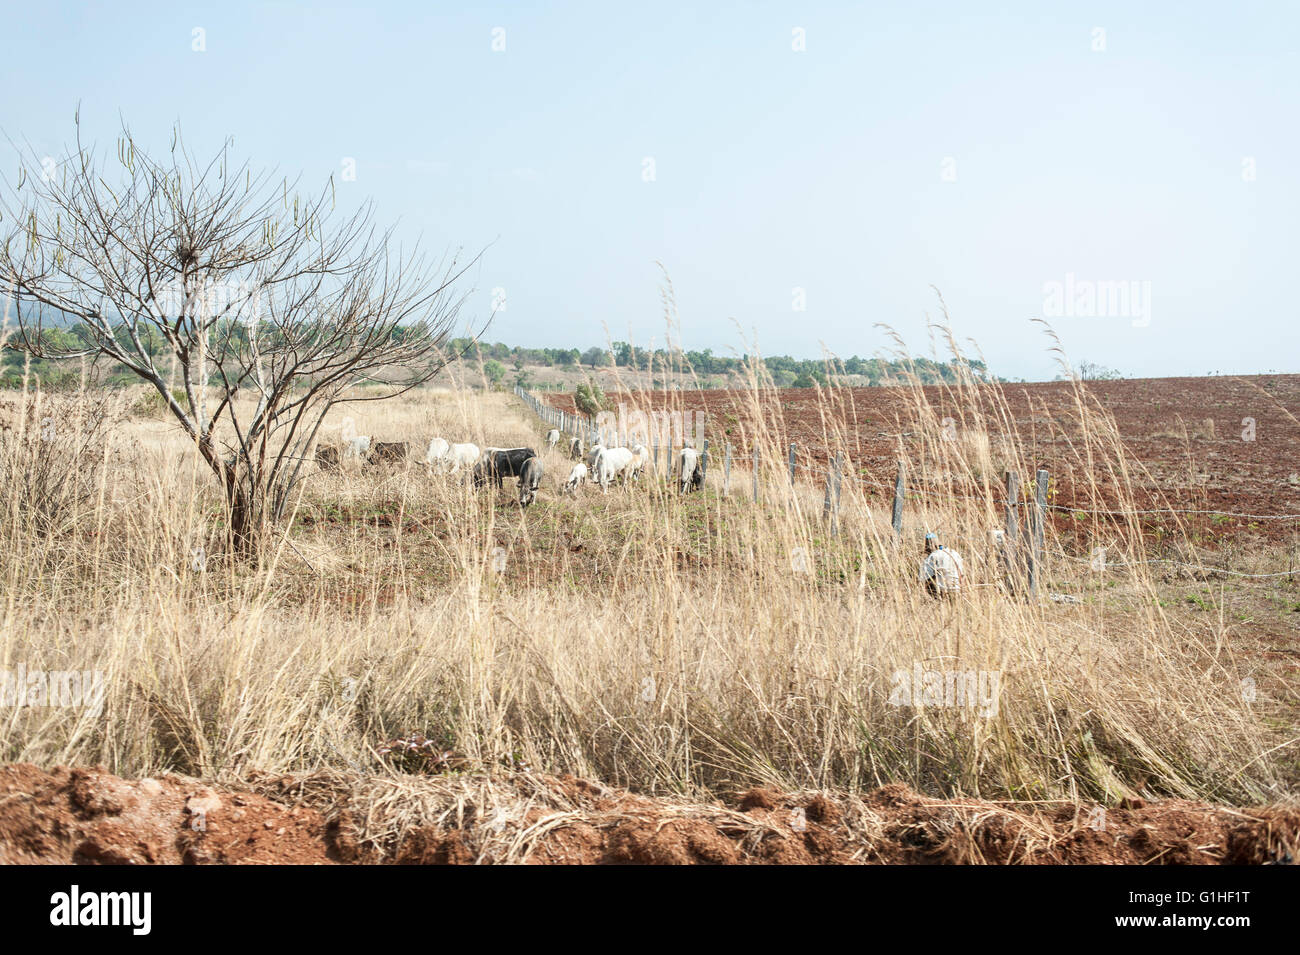 White and black oxes on a field in a landscape in Shan hills area near Inle lake in Myanmar Burma. Stock Photo